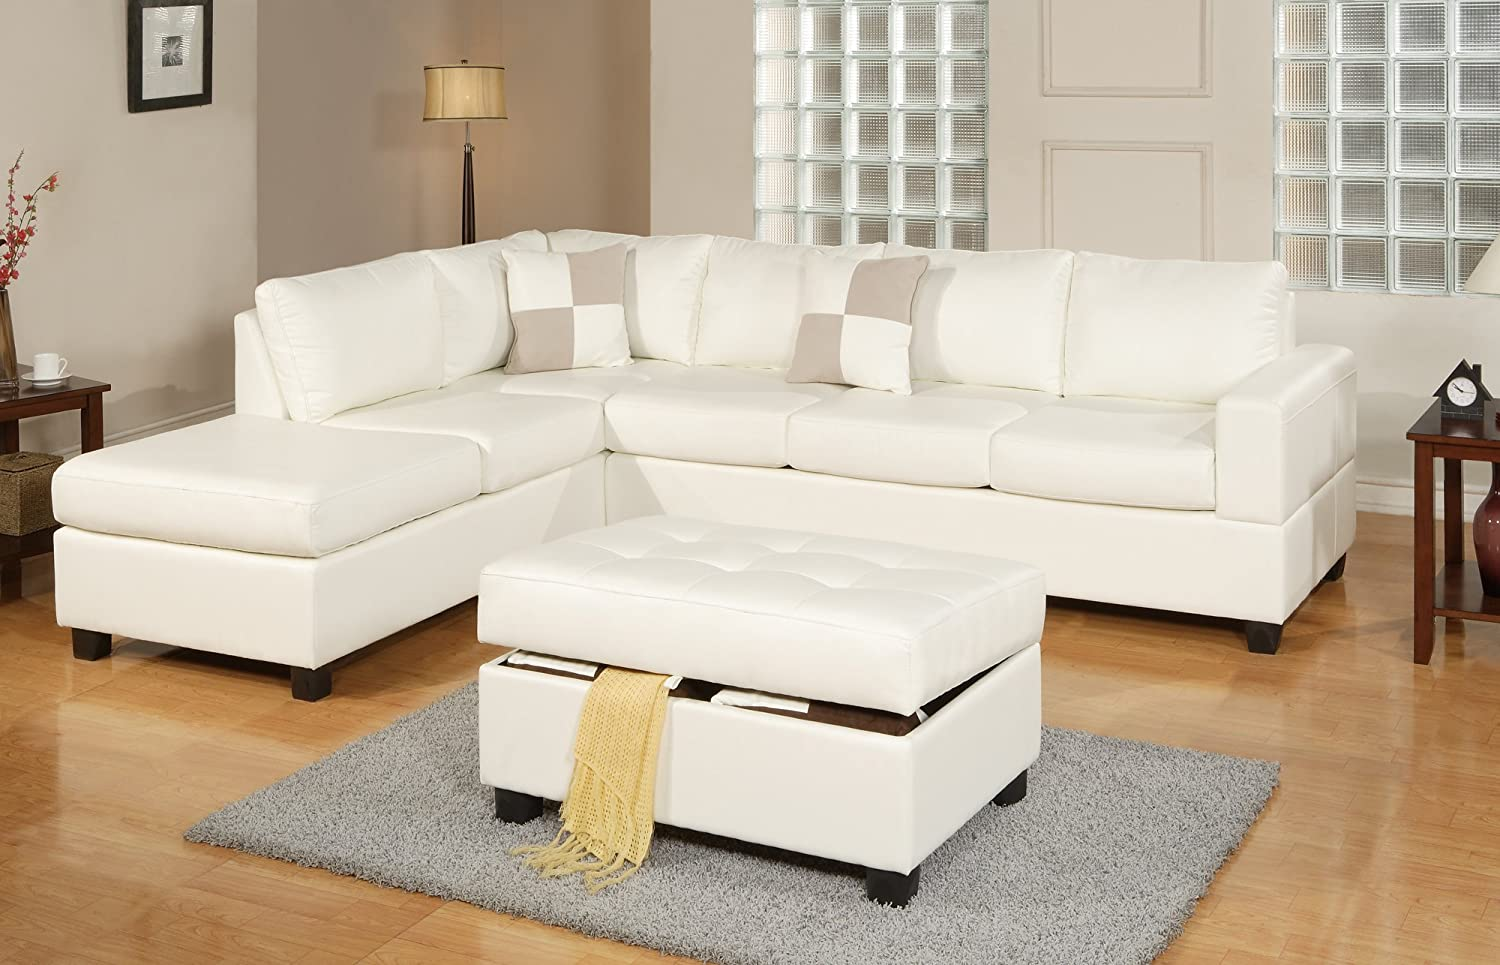 Amazon.com Bobkona Soft-touch Reversible Bonded Leather Match 3-Piece Sectional Sofa Set White Kitchen u0026 Dining : leather chaise couch - Sectionals, Sofas & Couches